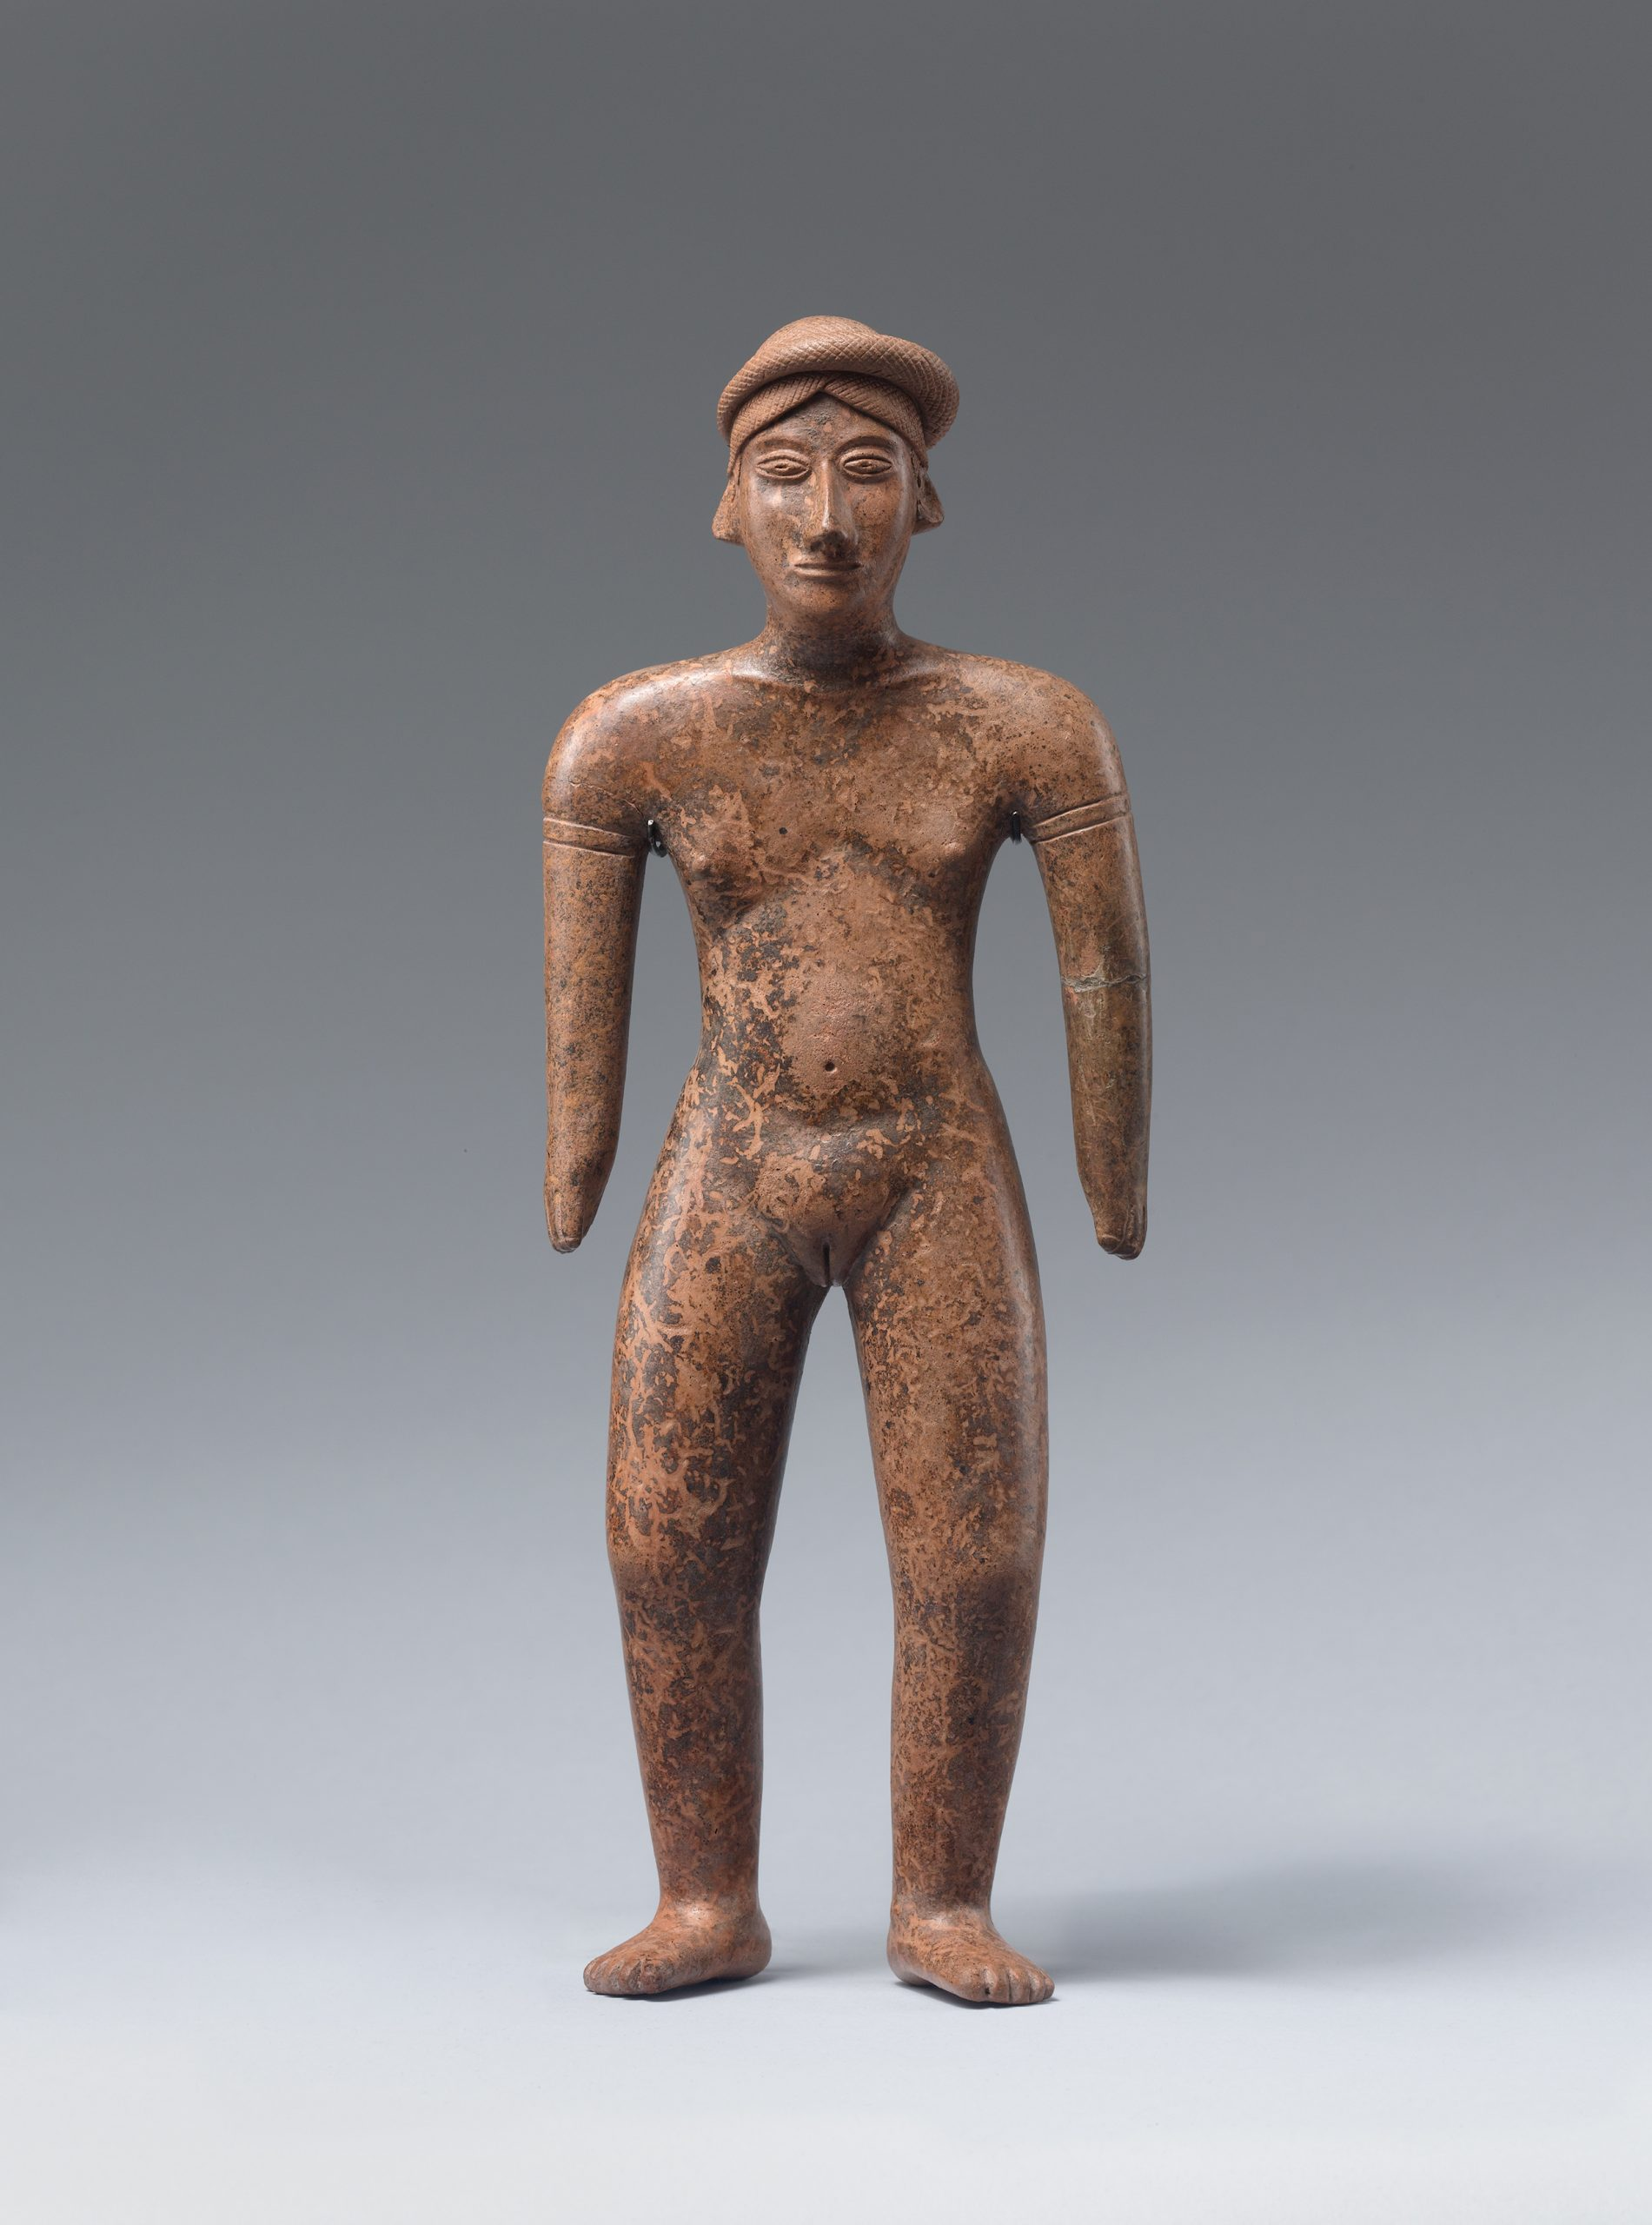 Pendant of a figure with both hands on their head and a large round hole in the chest.